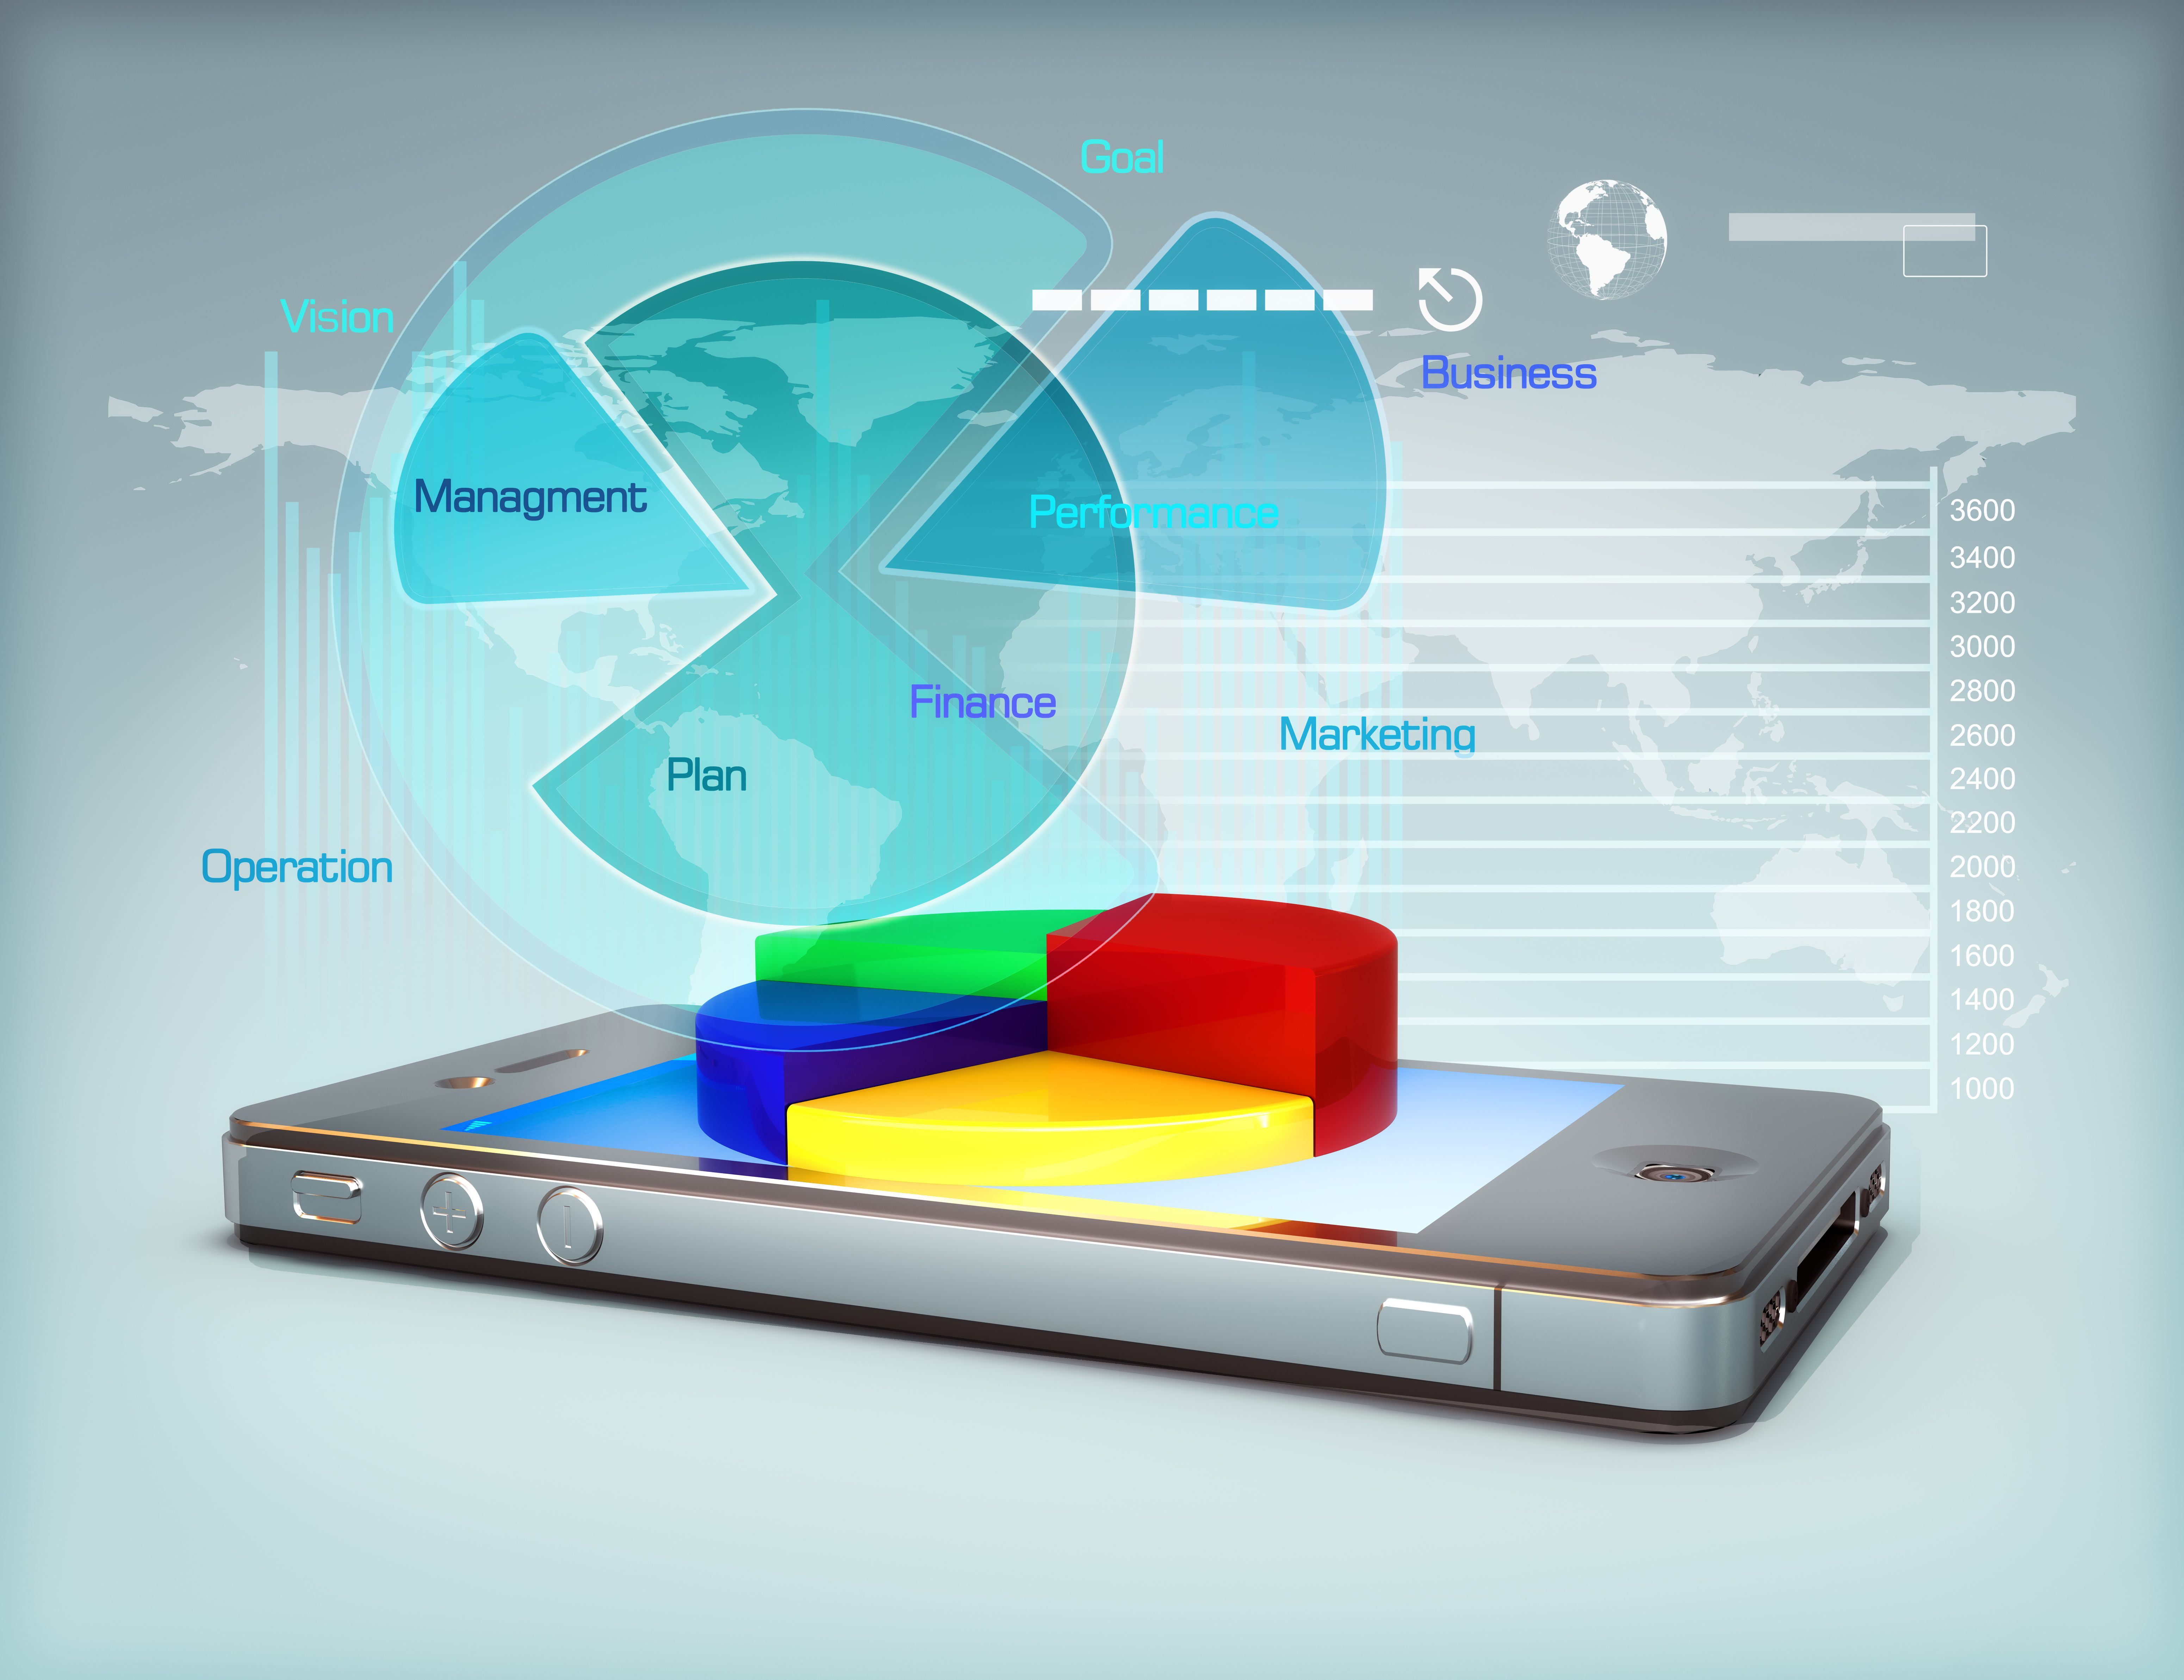 Tailormake your app to specifically suit your business